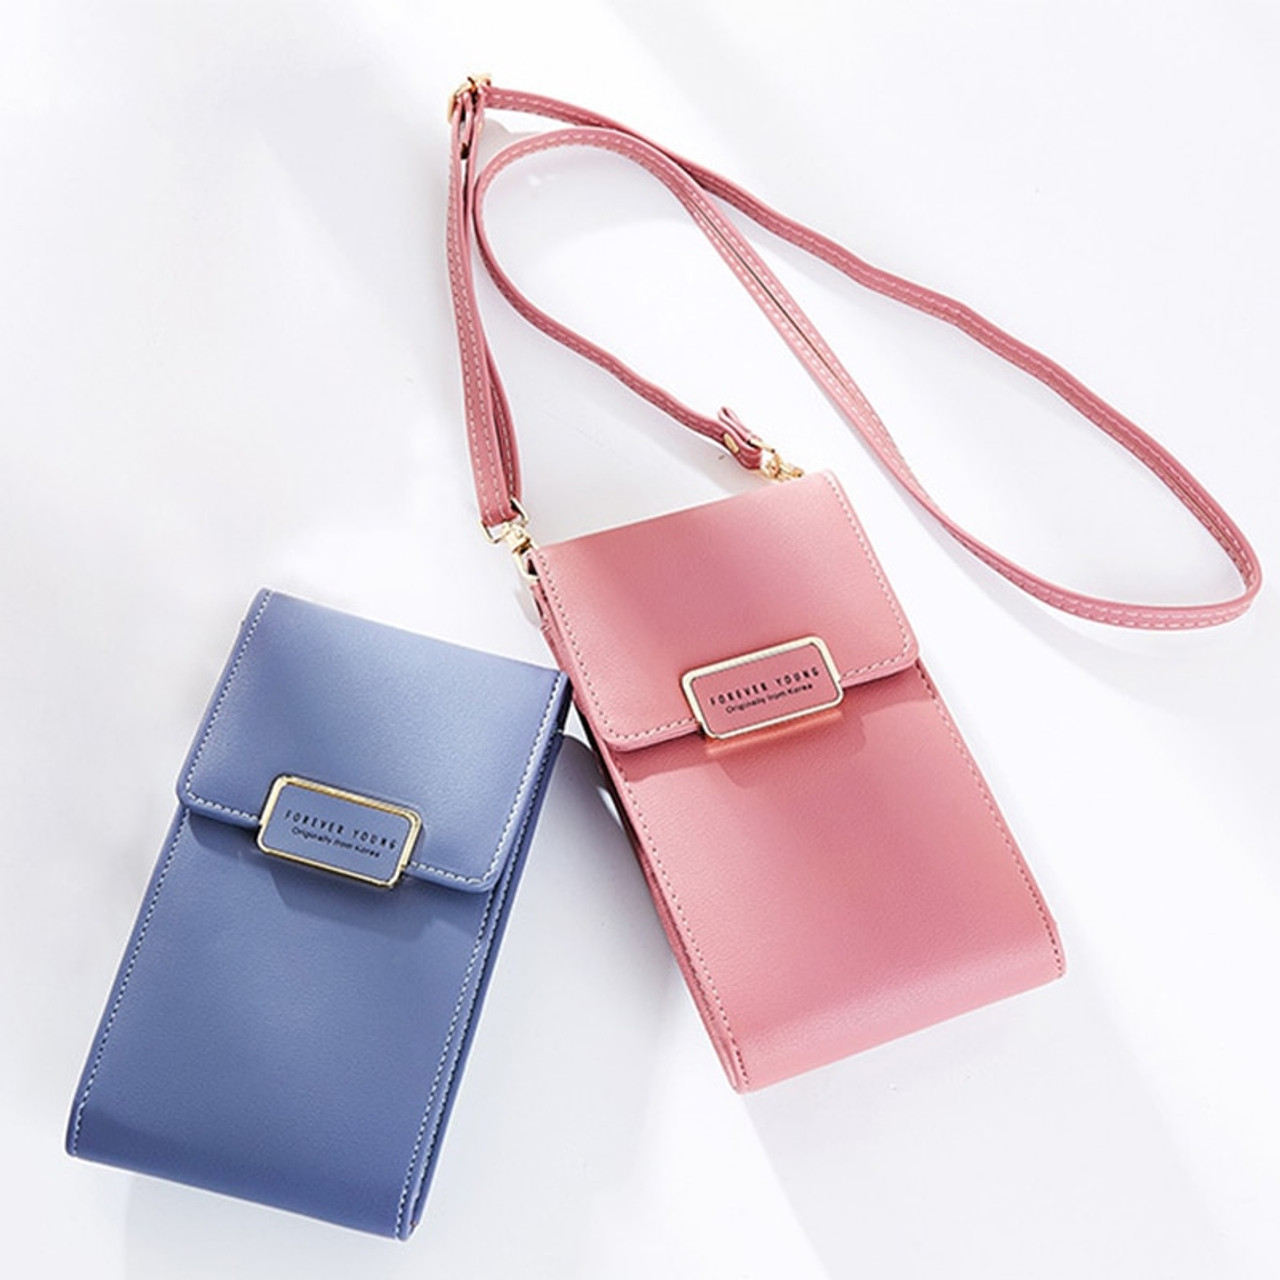 0da25e1eb707 Luxury Women Phone Bag Message PU Leather Mini Shoulder Bags Girls With  Coin Purses Crossbody Bag Card Holder Female Fashion Bag - OnshopDeals.Com